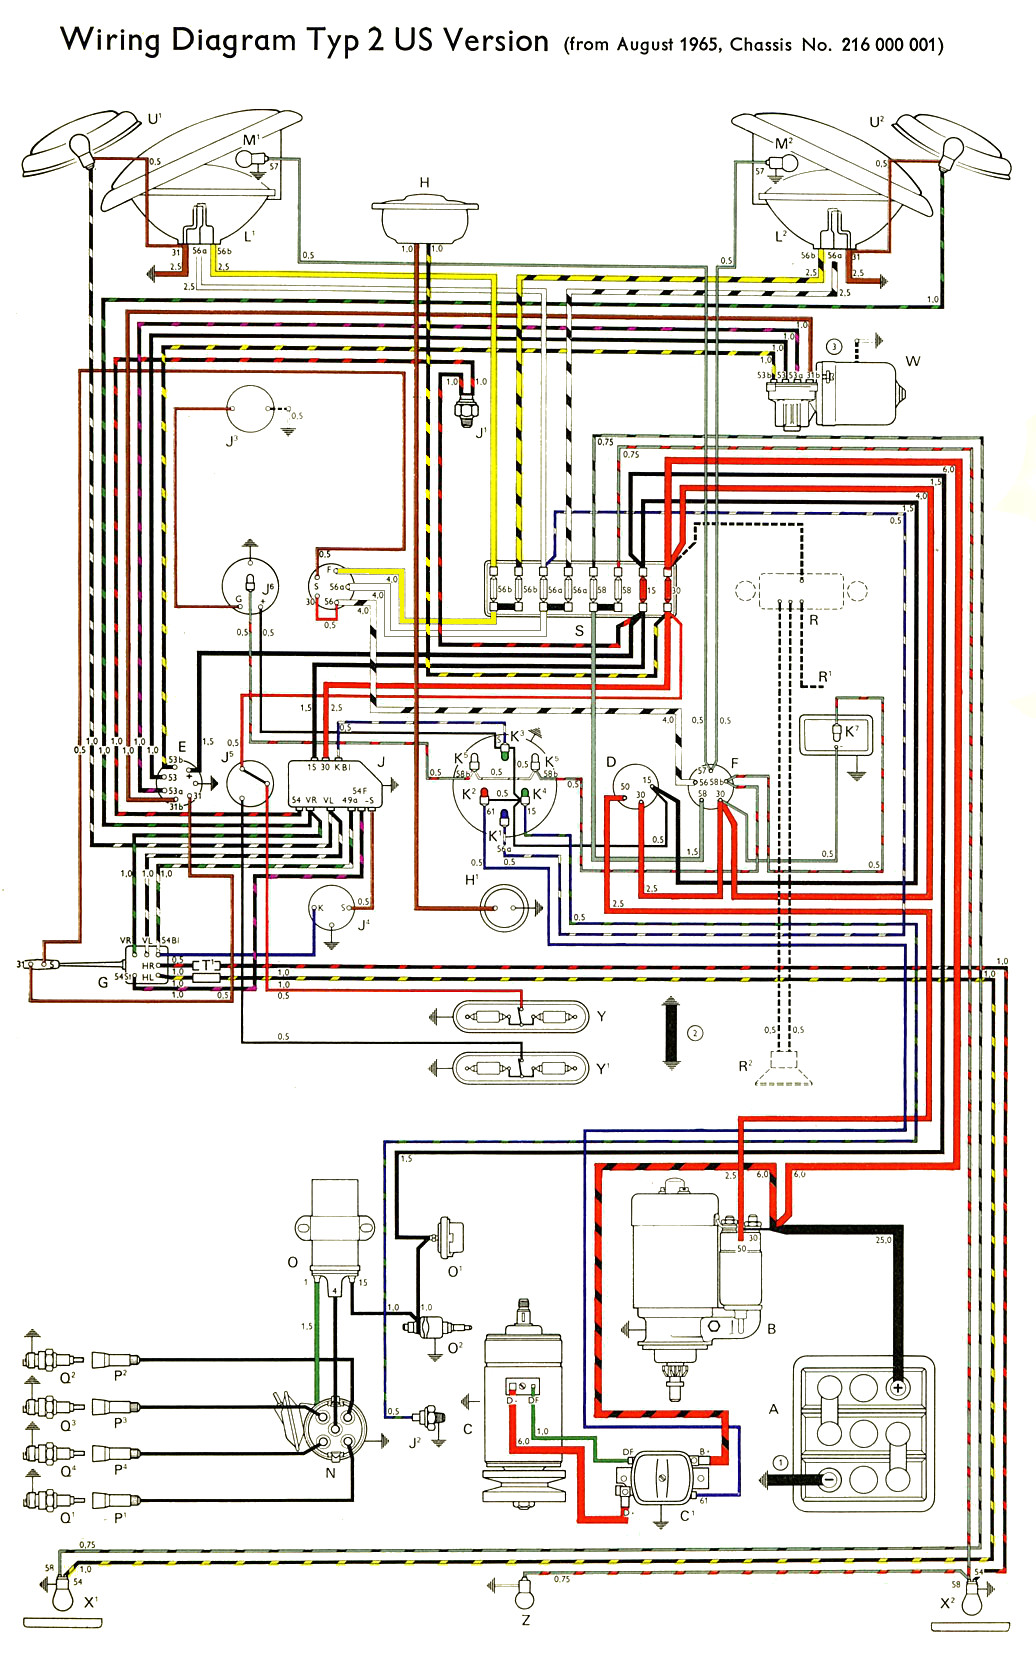 66 Vw Beetle Engine Diagram Electrical Schematics Air Cooled Wiring For Circuit And Hub U2022 Thing